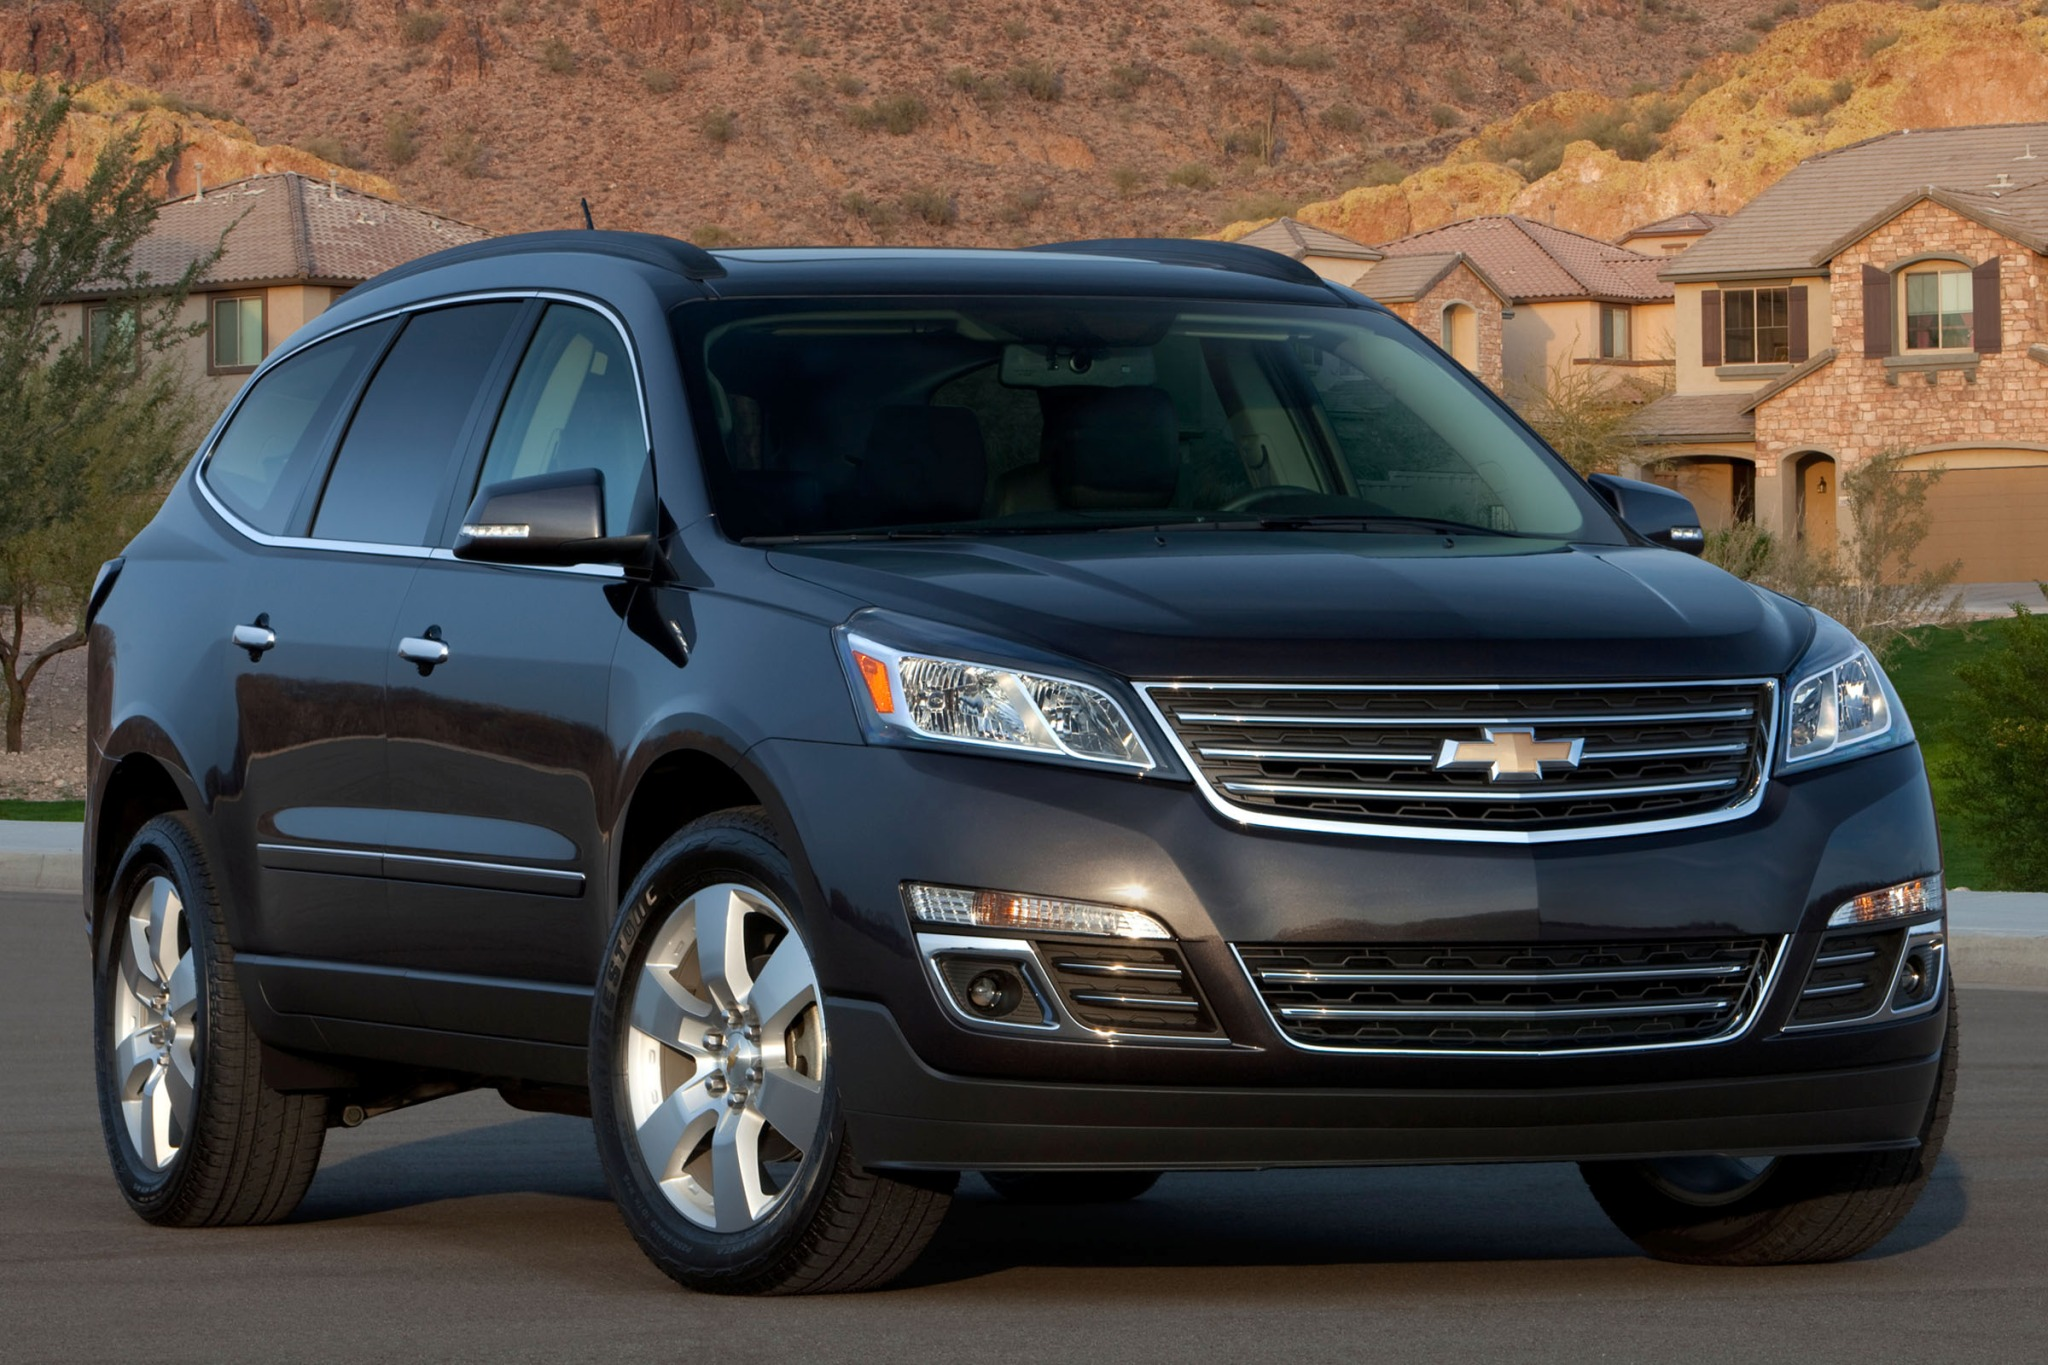 2015 Chevrolet Traverse VIN Number Search